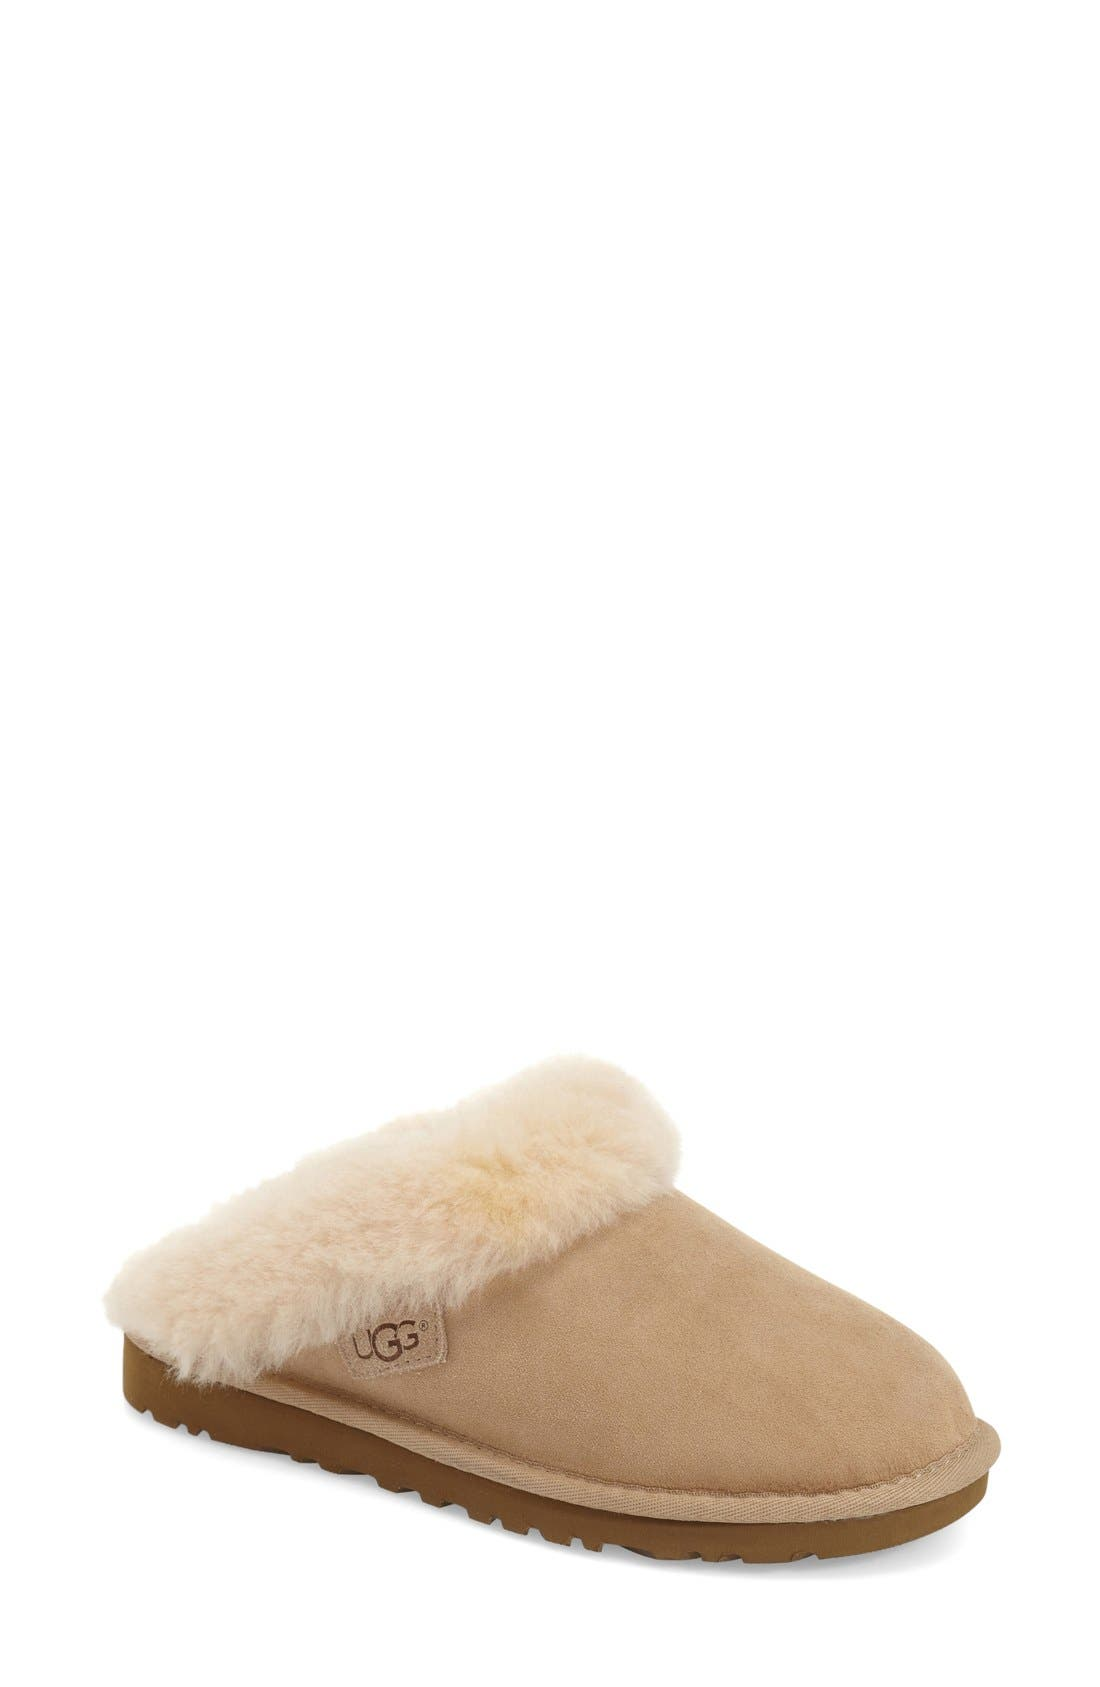 Main Image - UGG® 'Cluggette' Genuine Shearling Indoor/Outdoor Slipper (Women)